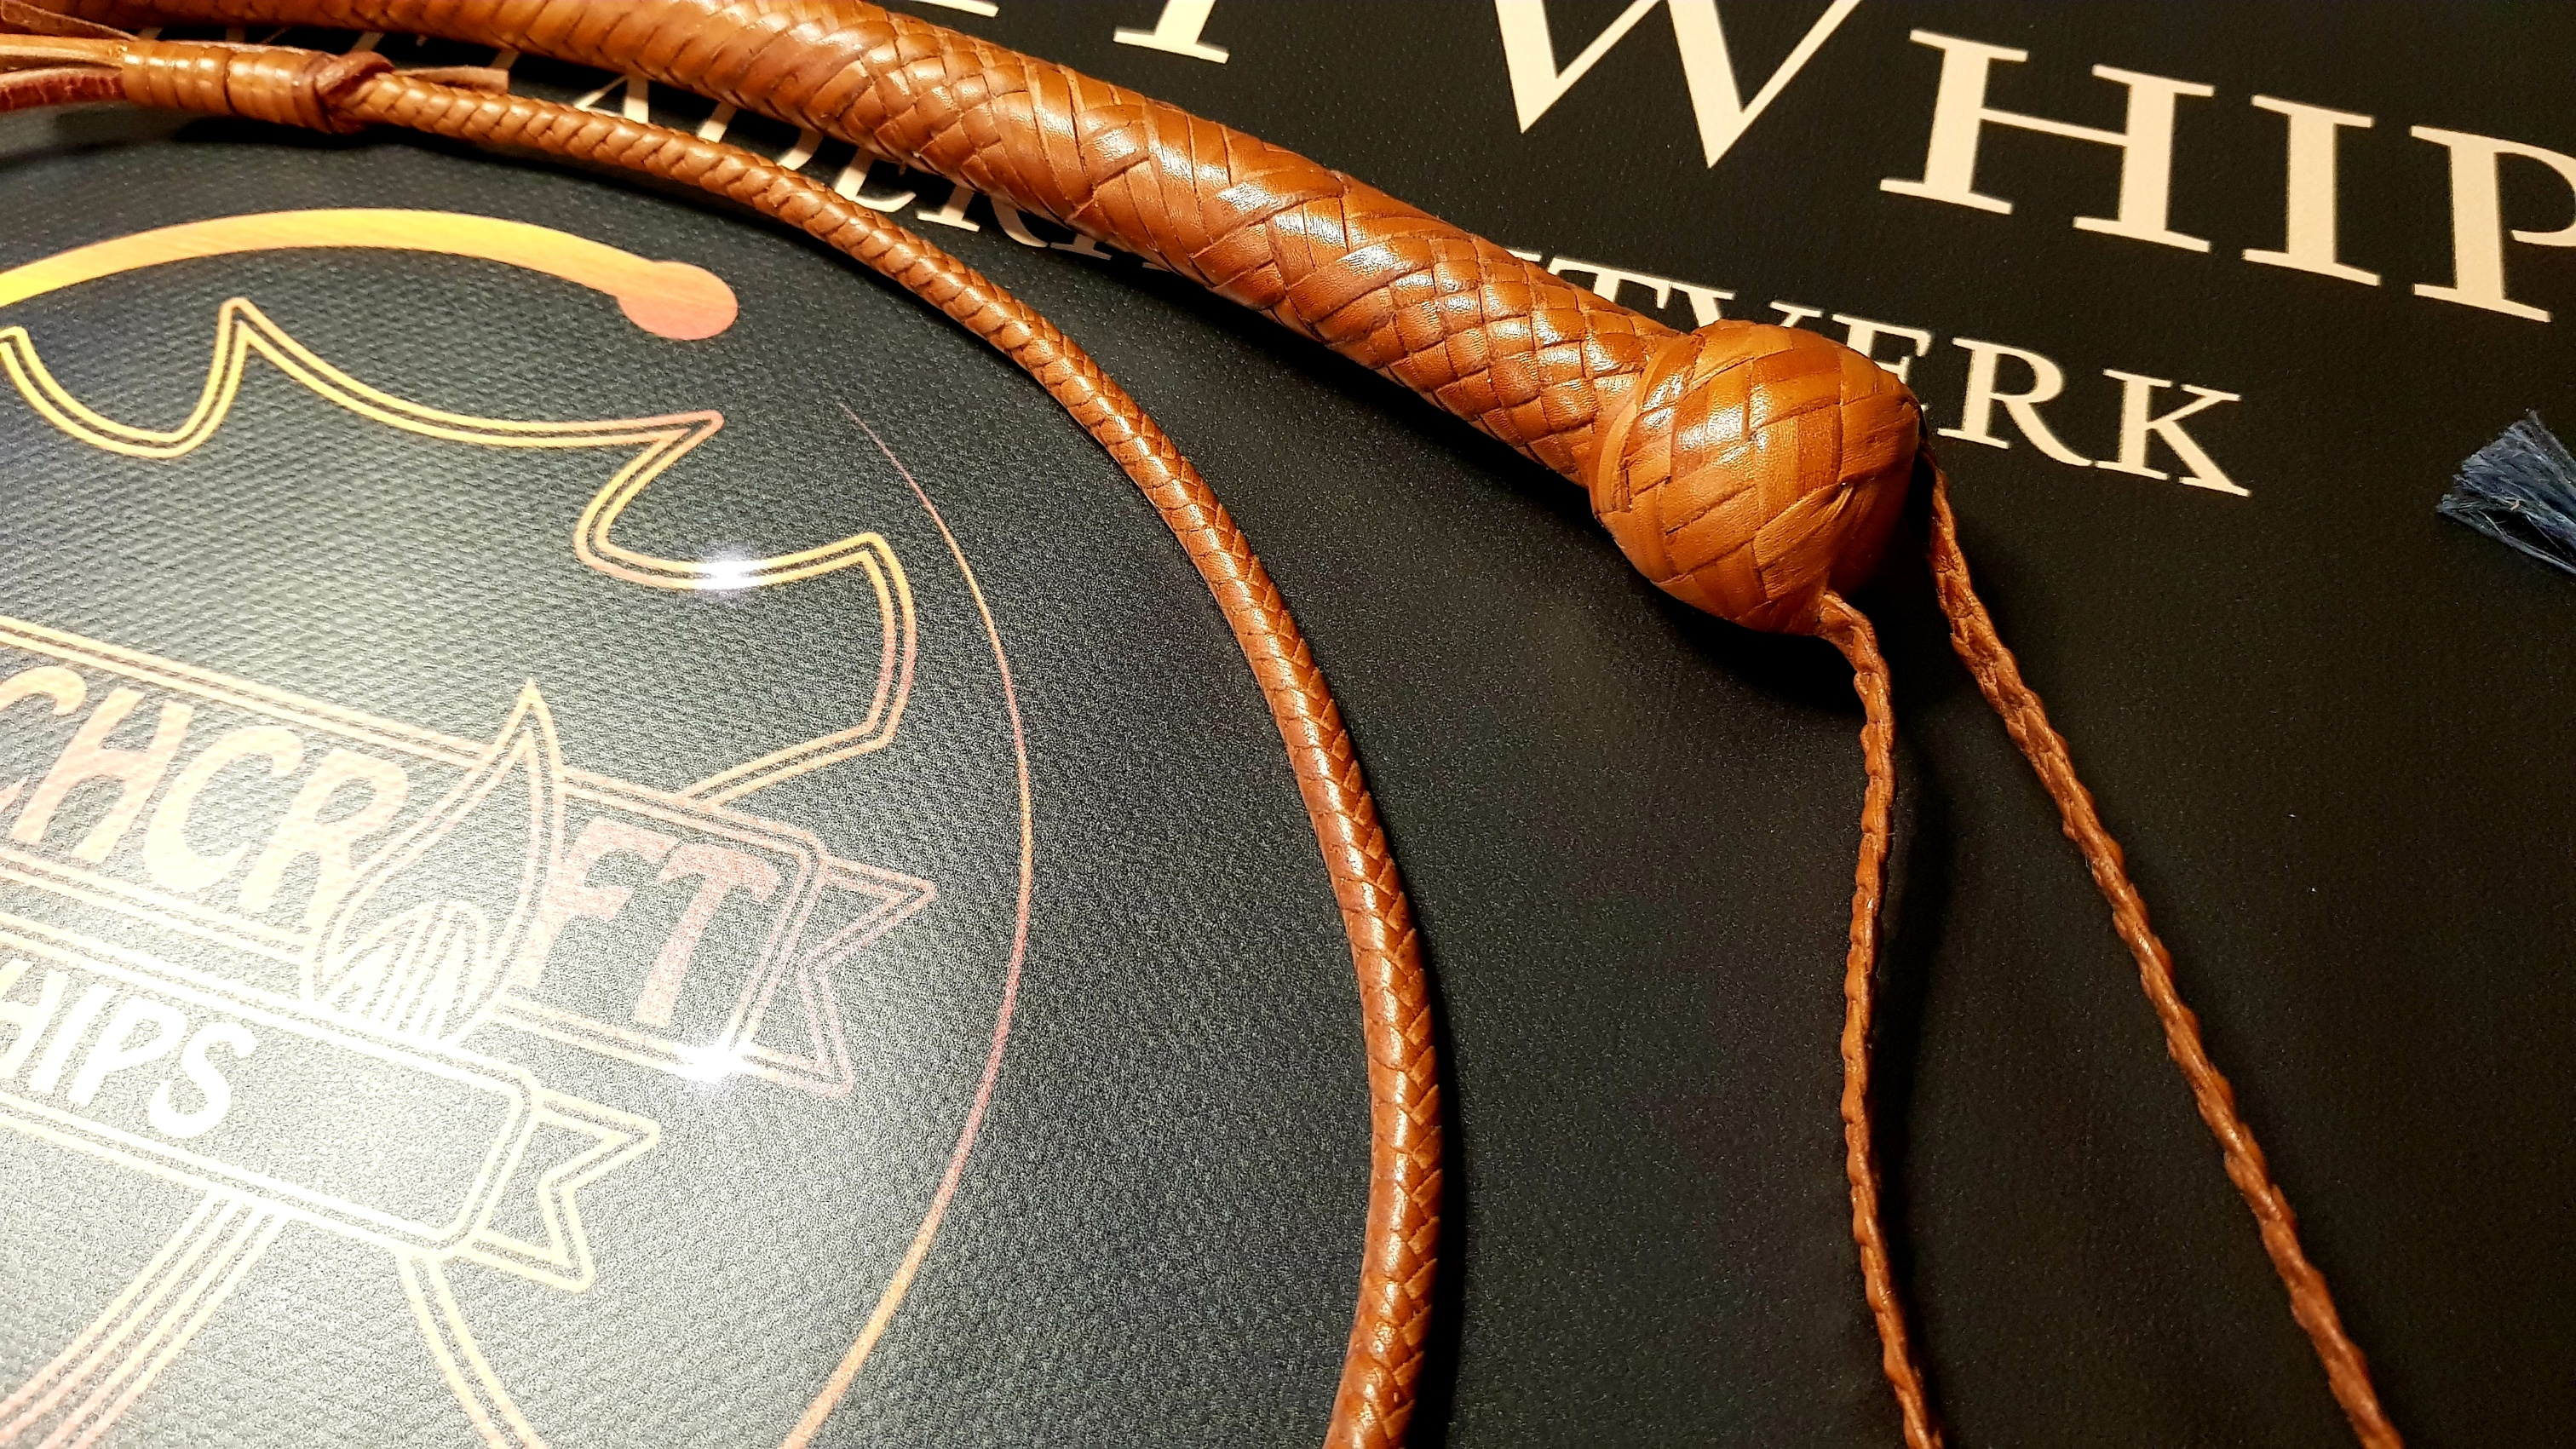 Turks head knot on Snakewhip